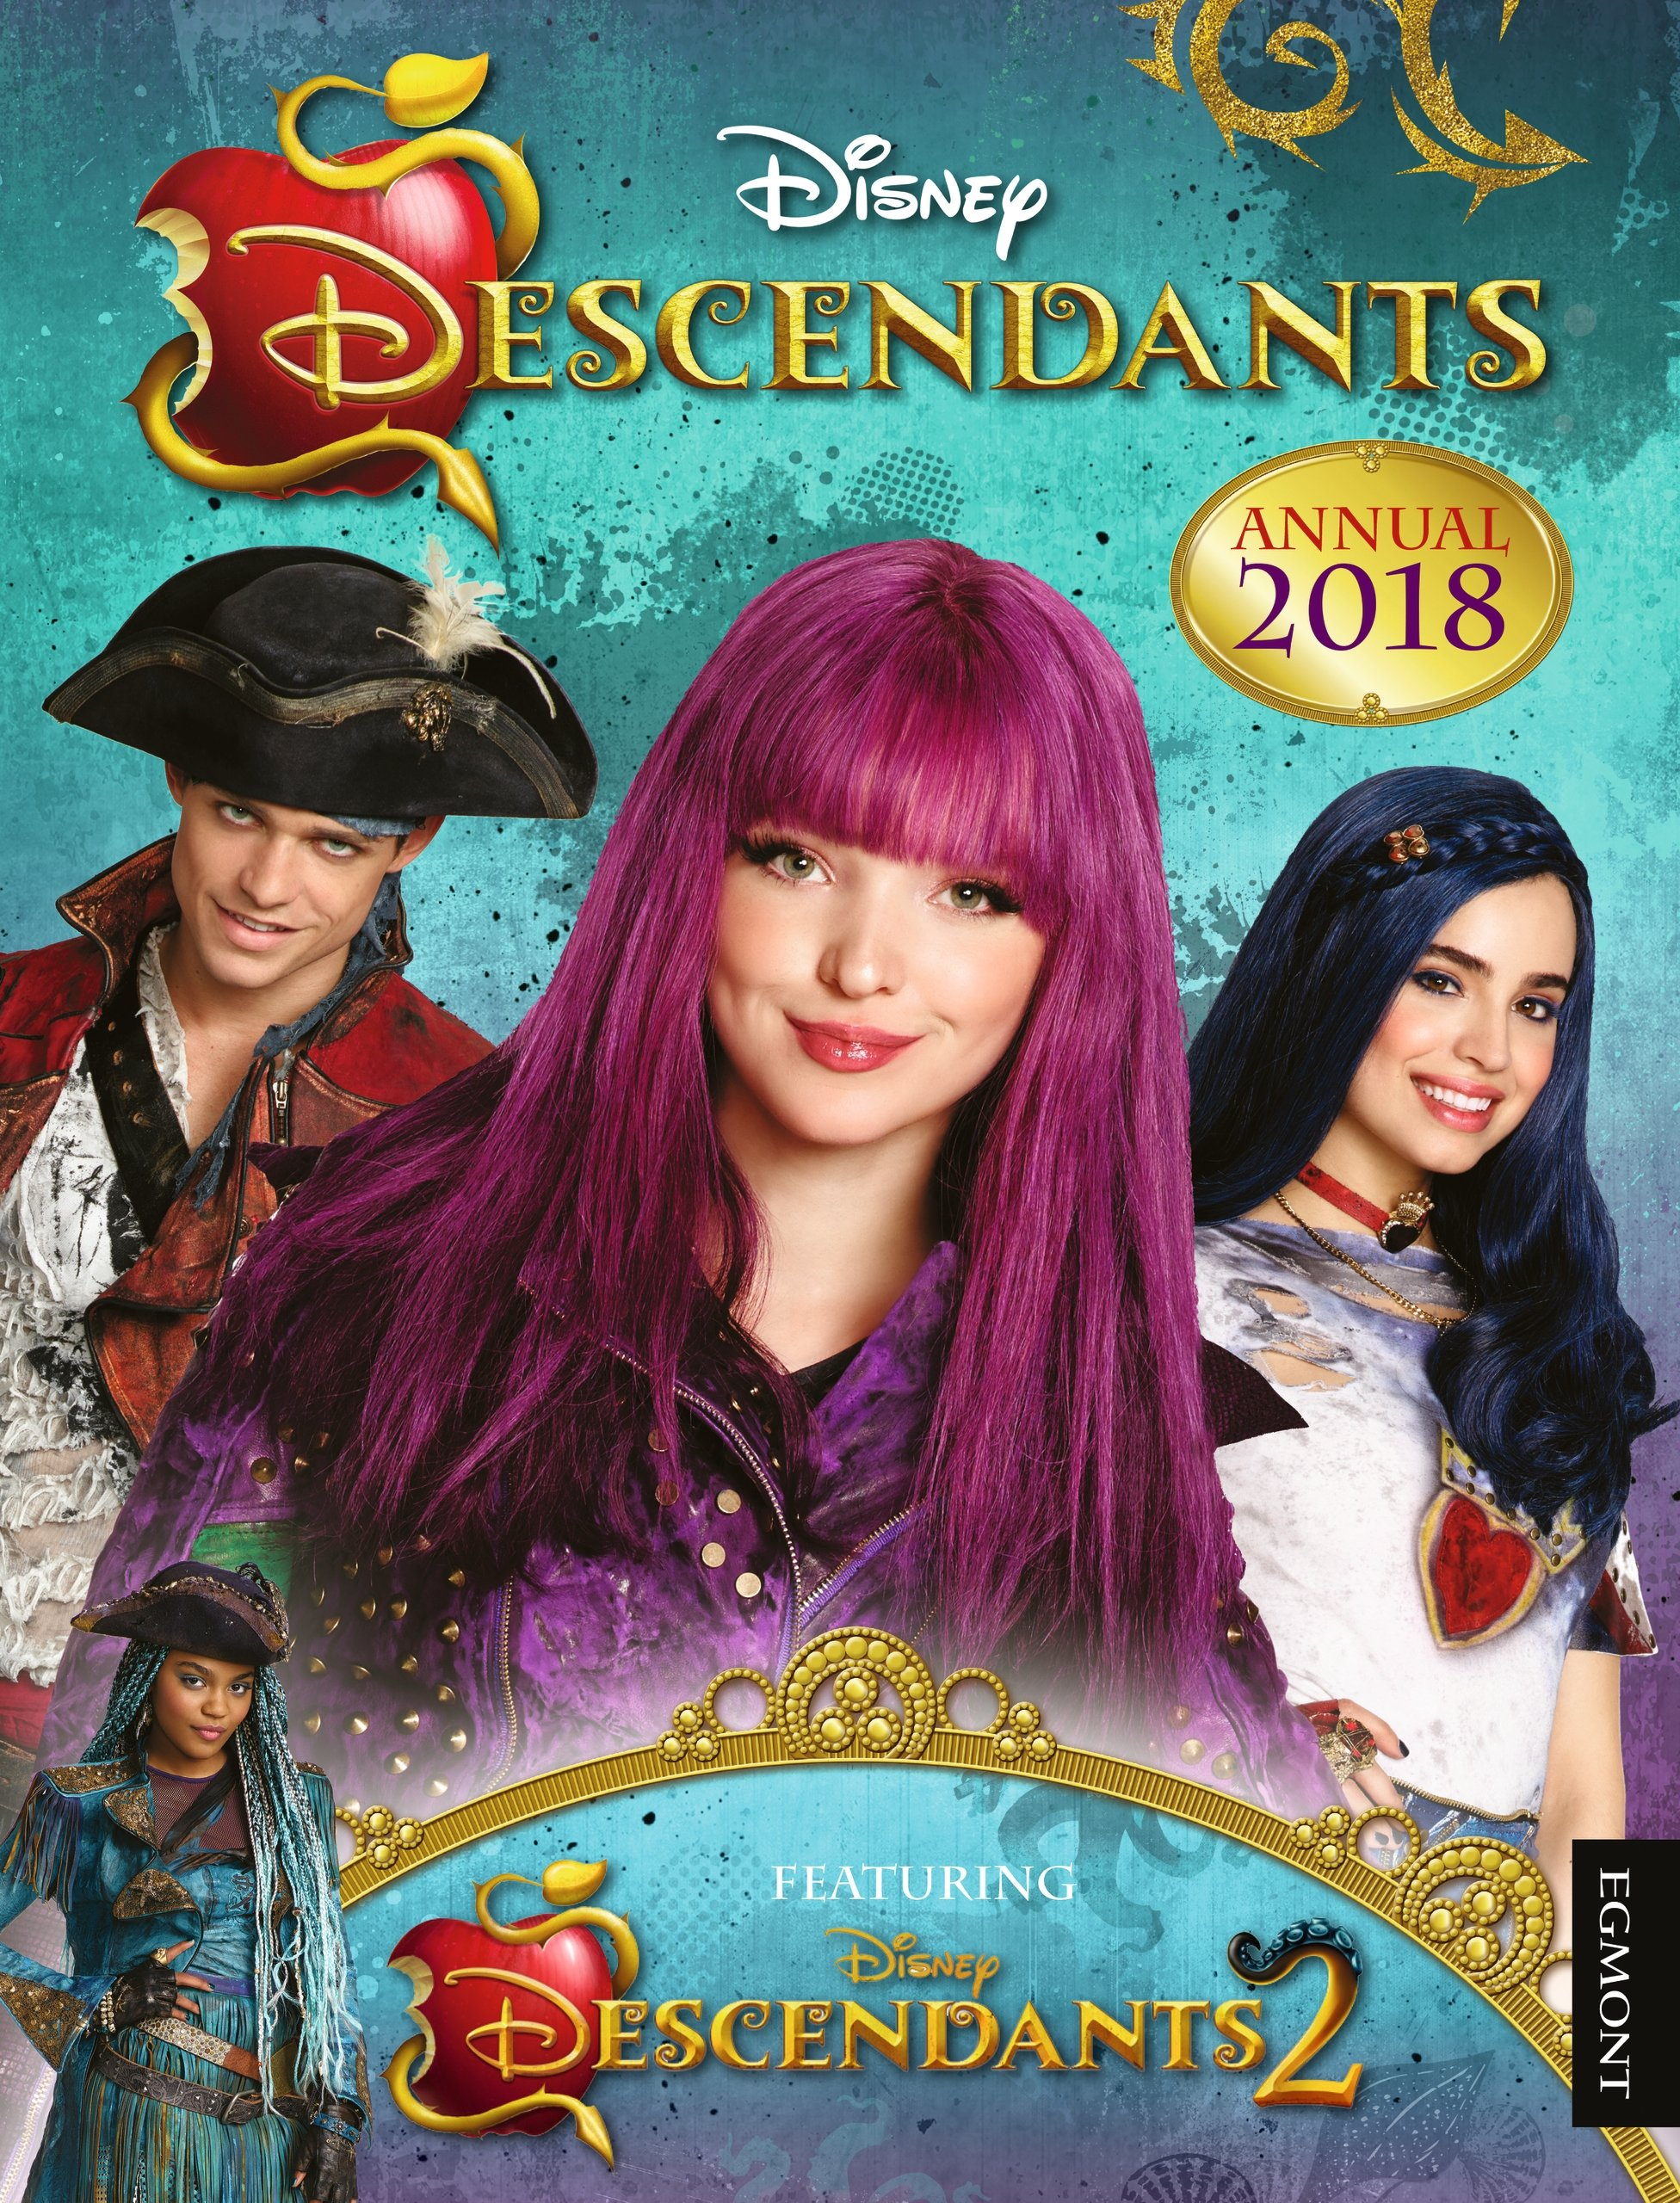 Disney Descendants Annual 2018 Egmont Annuals